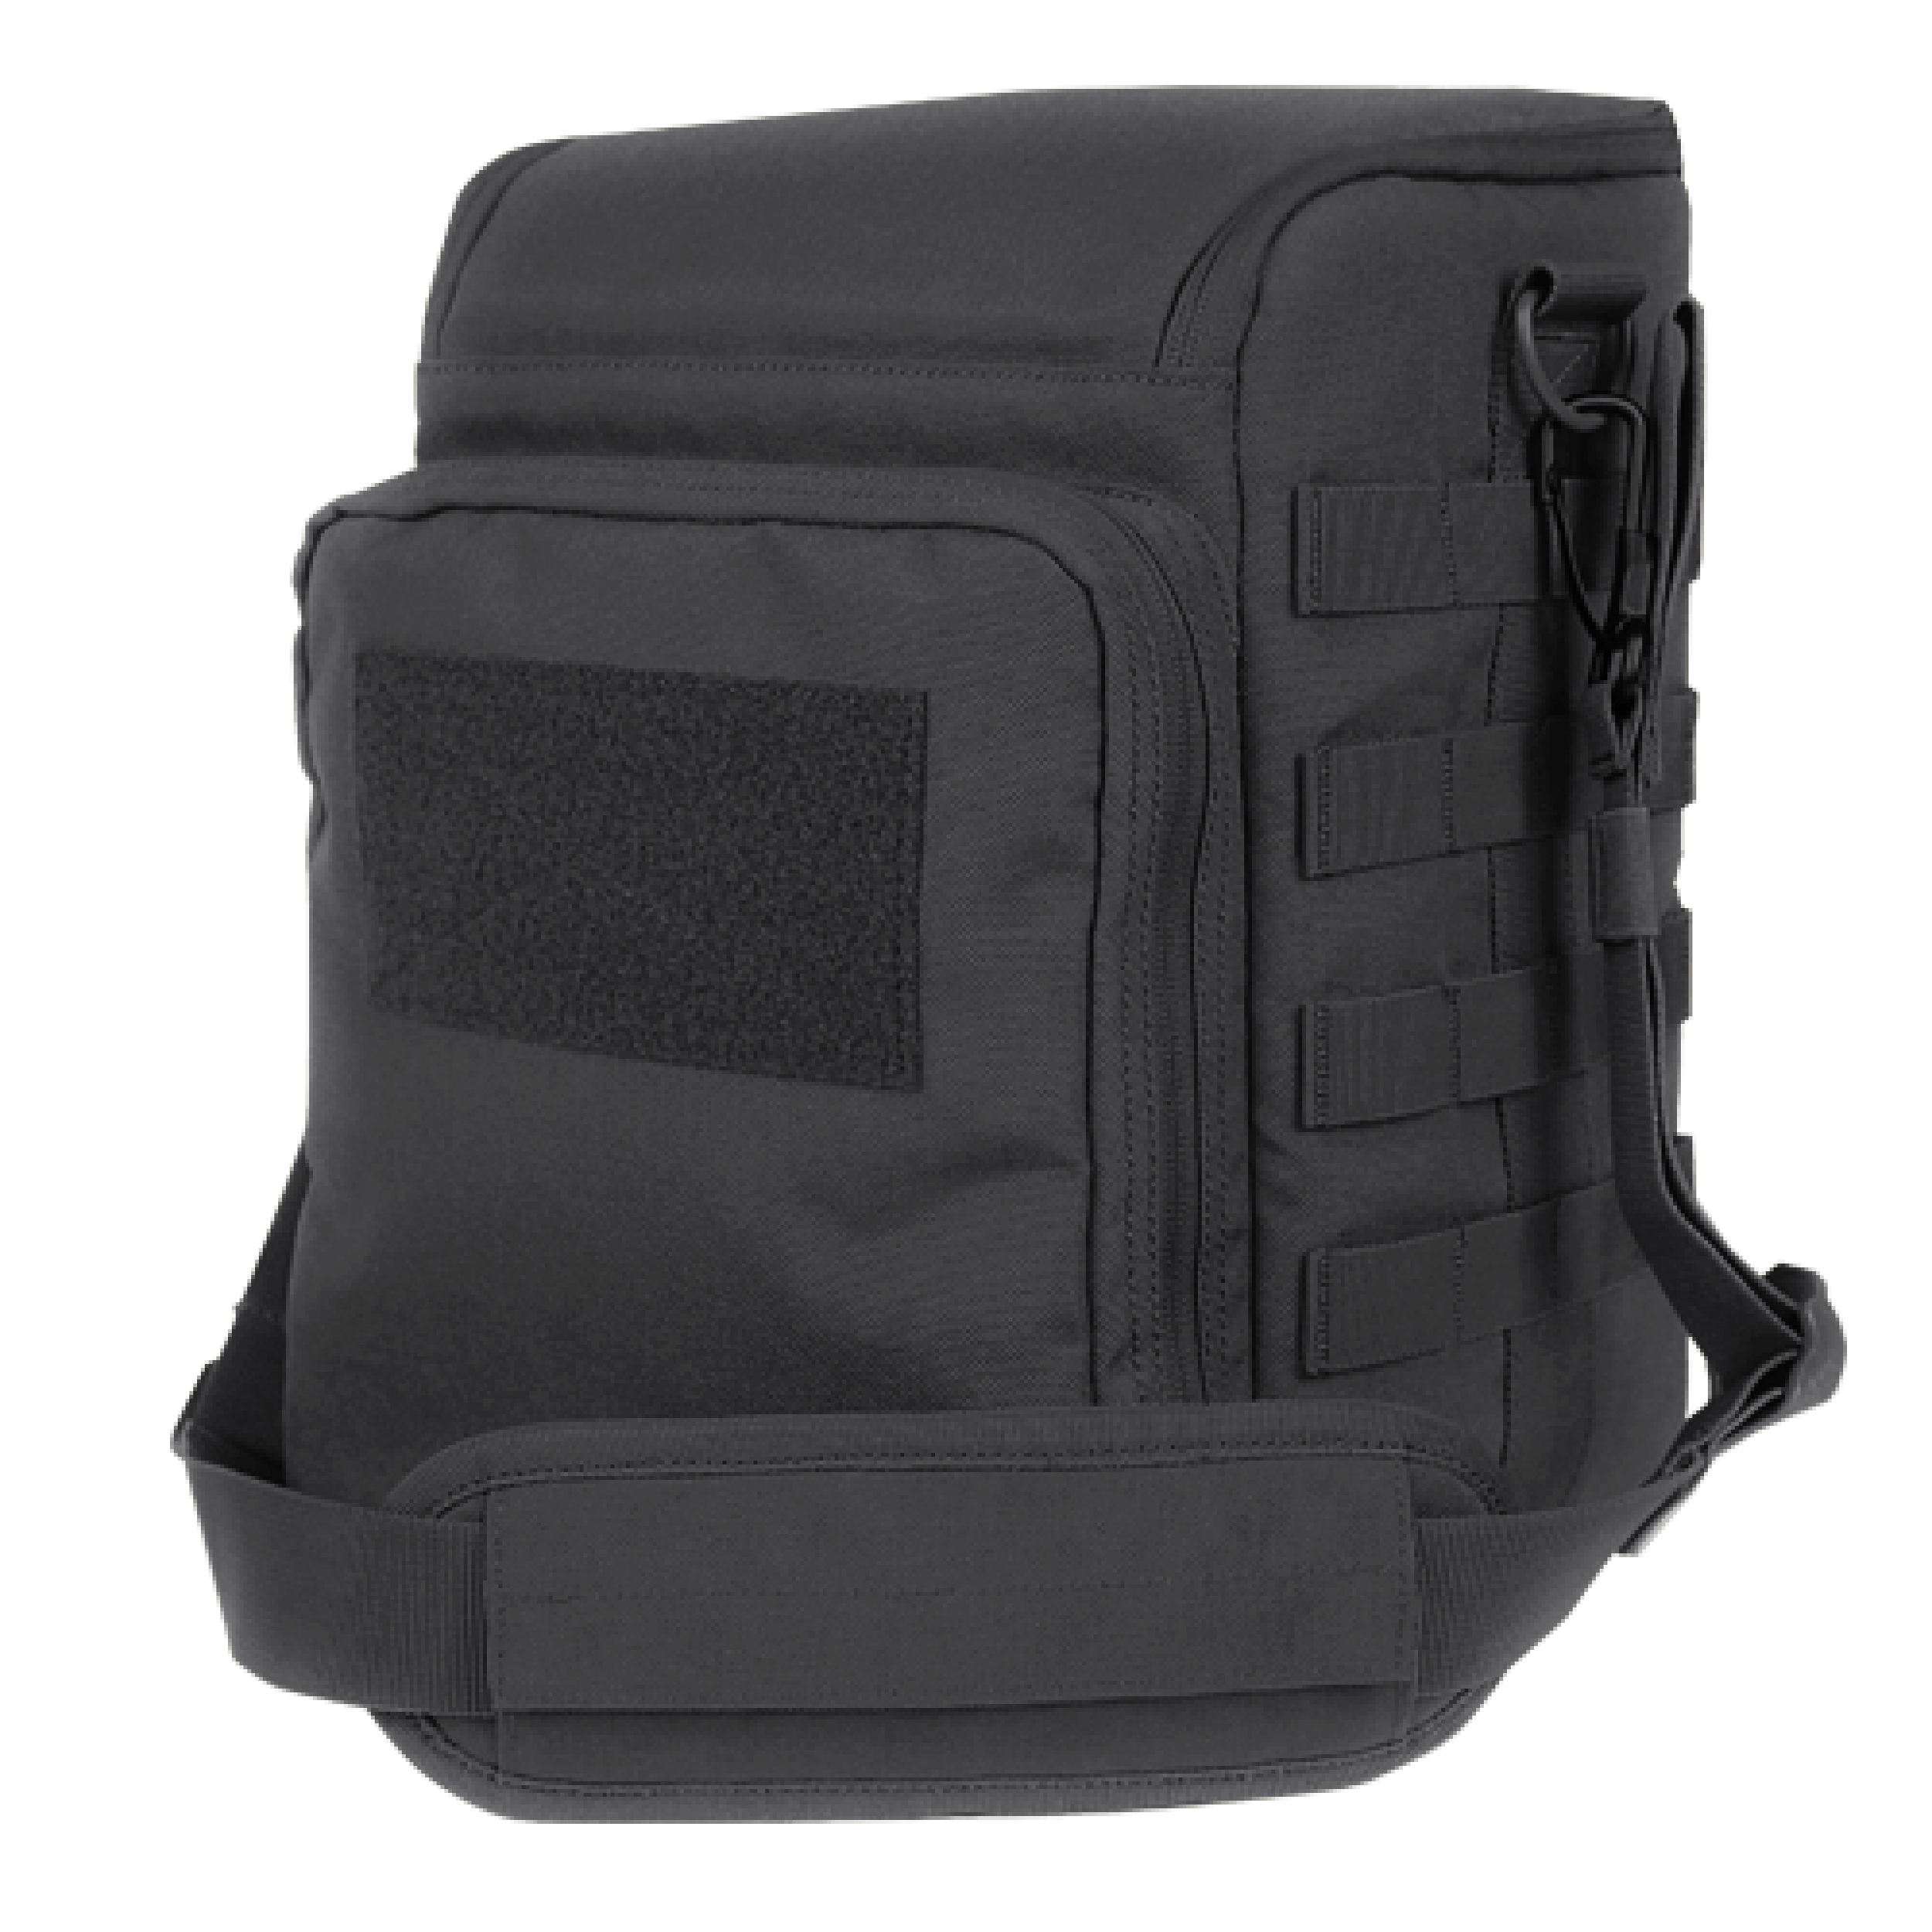 Condor Camera Bag schwarz